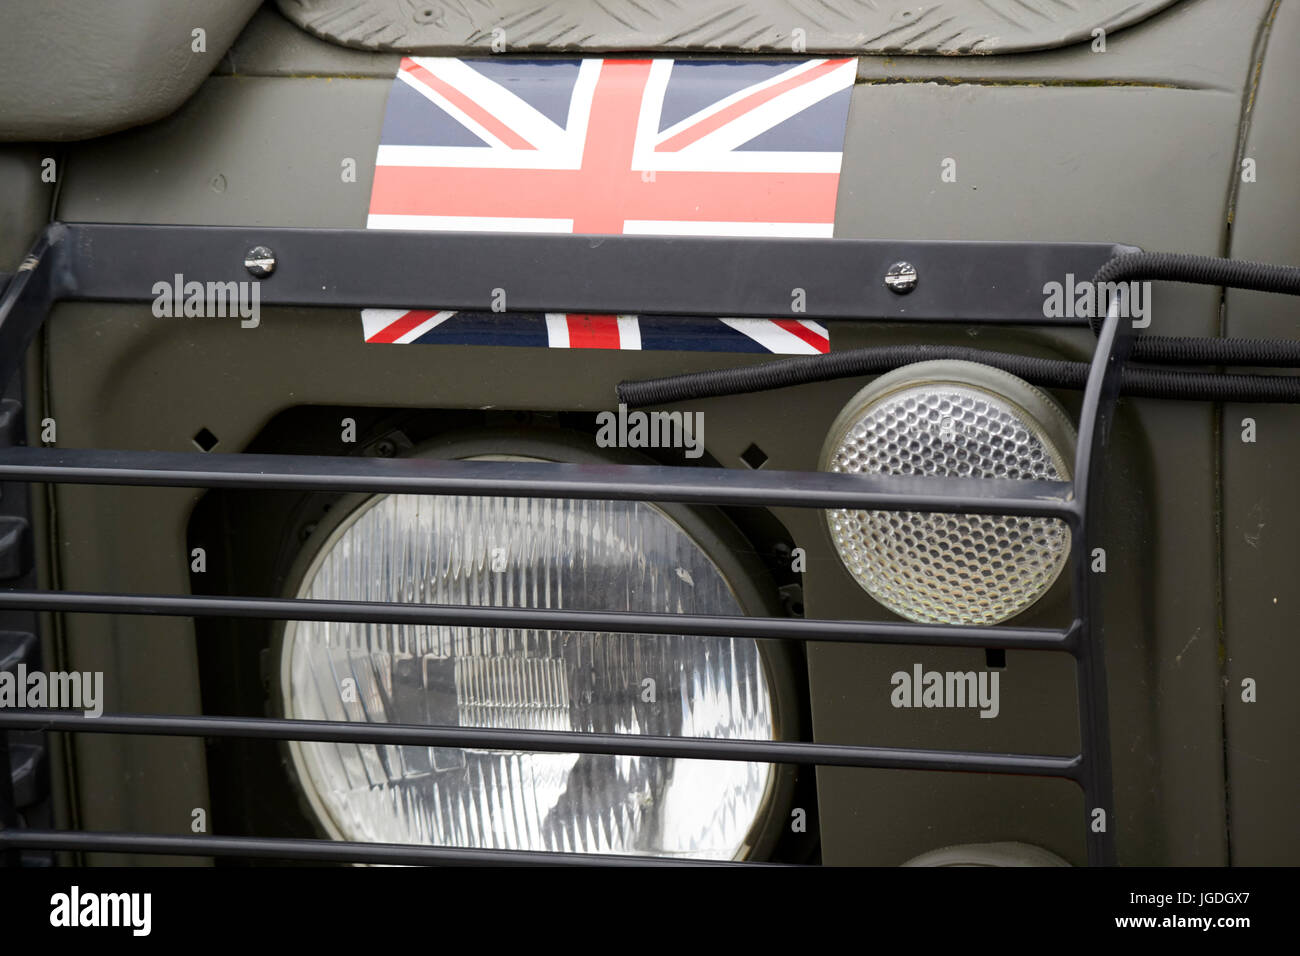 union flag on a british army landrover uk - Stock Image